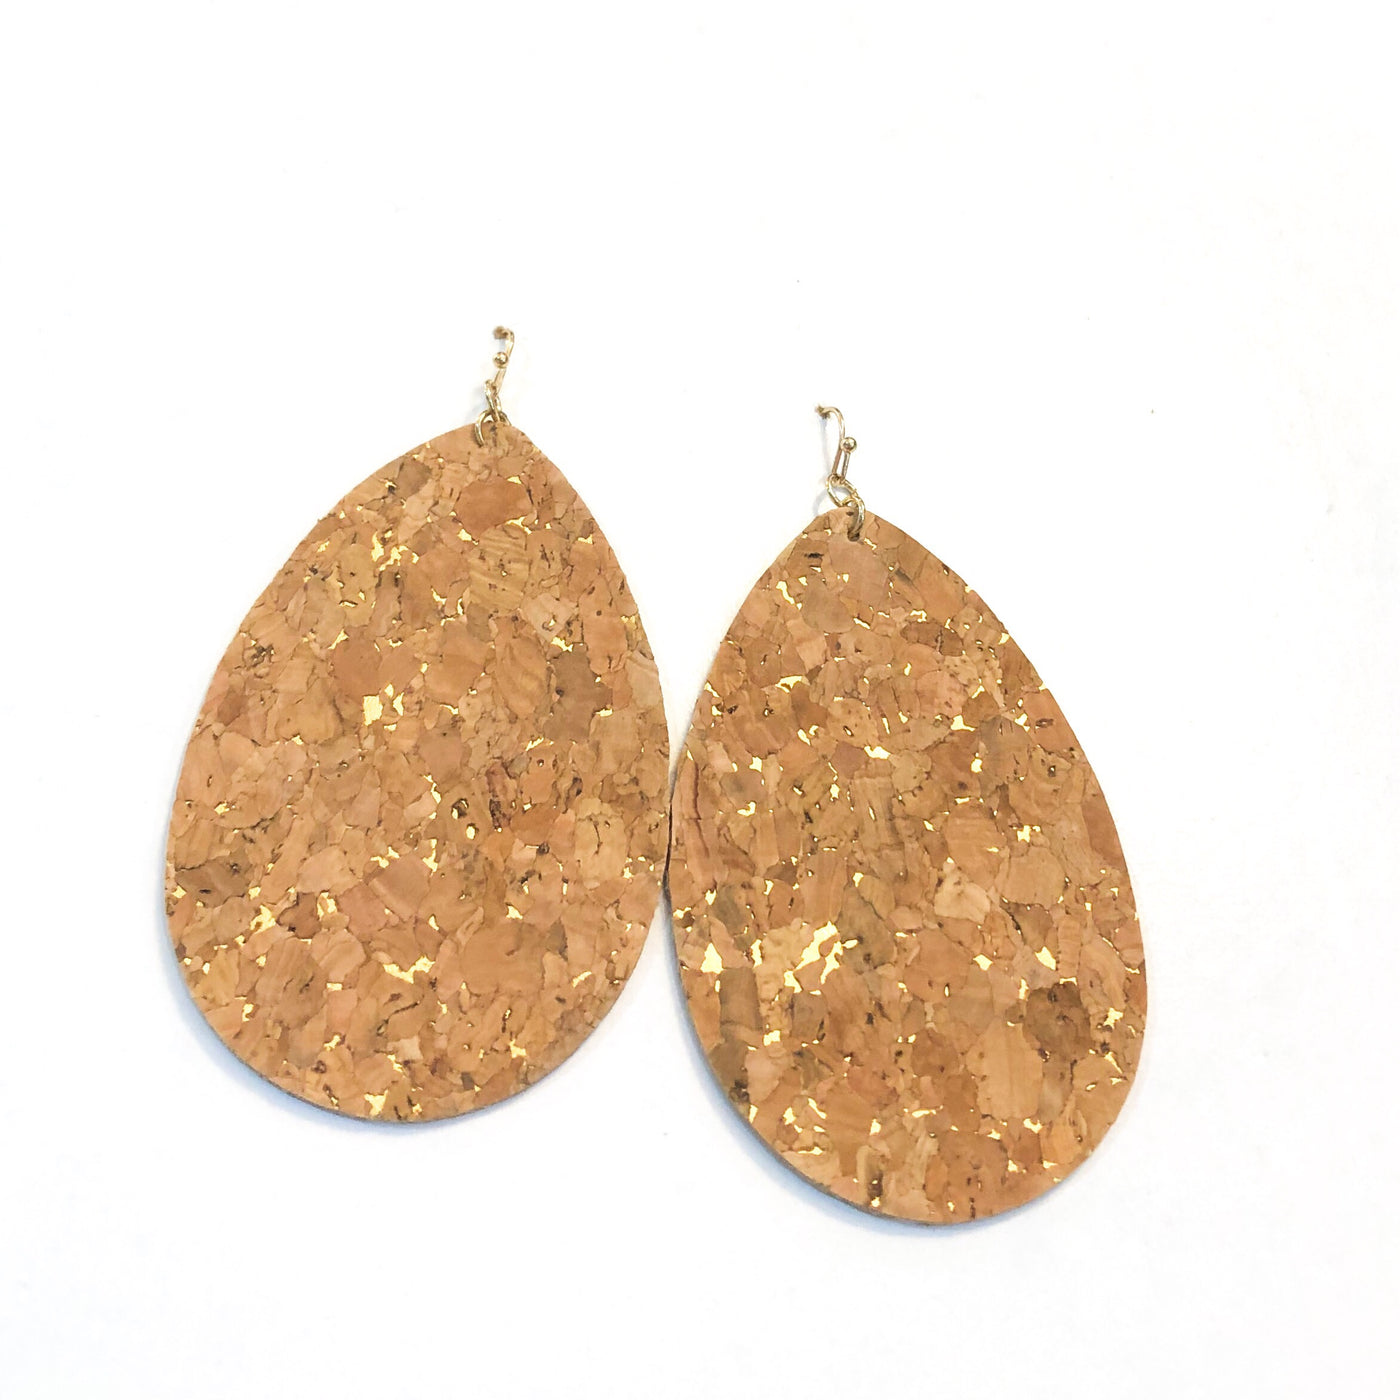 Oval Cork Earrings with Flecks of Gold